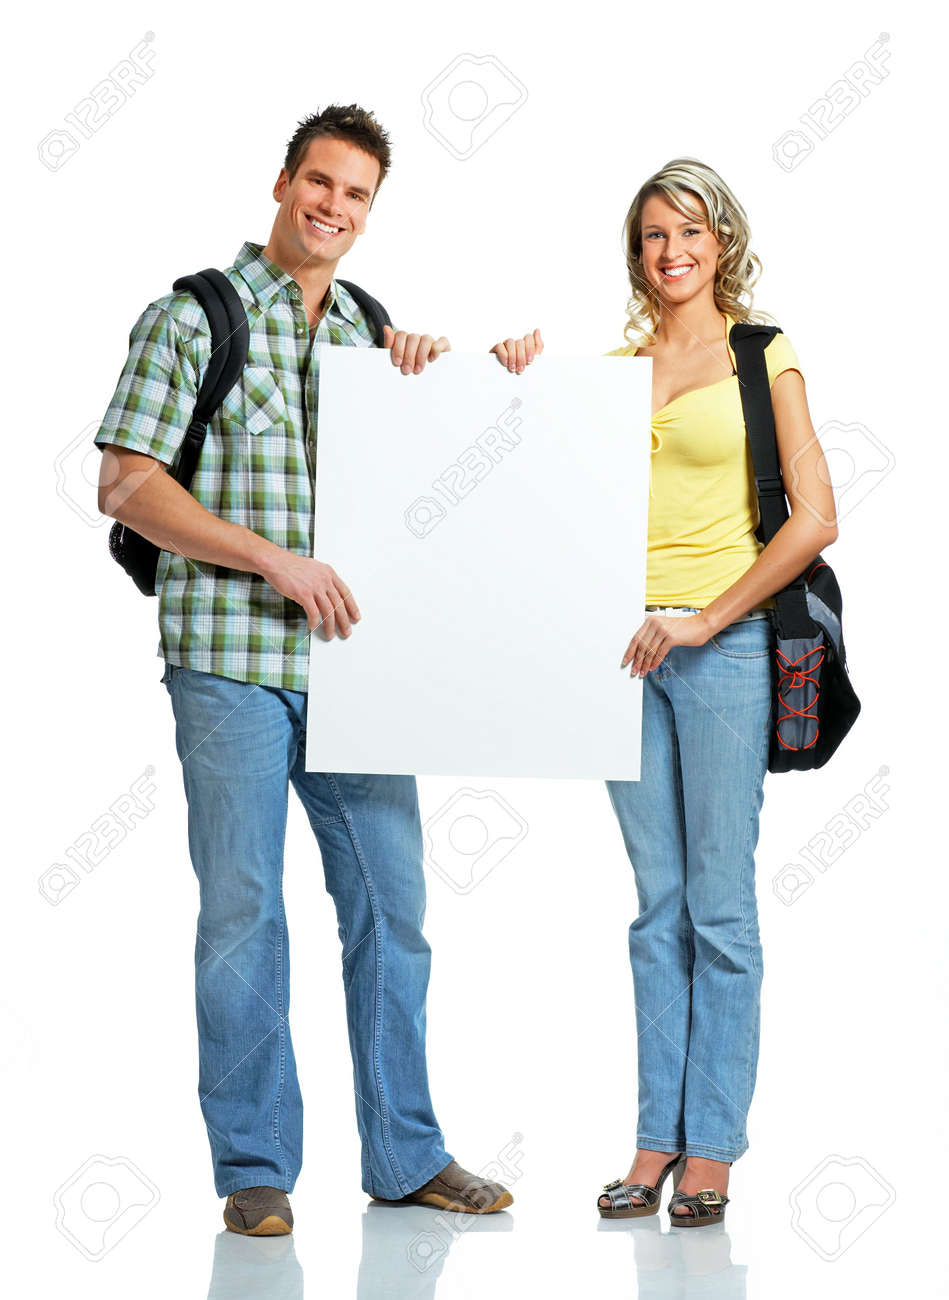 Young smiling  students with placard. Over white background Stock Photo - 2795933